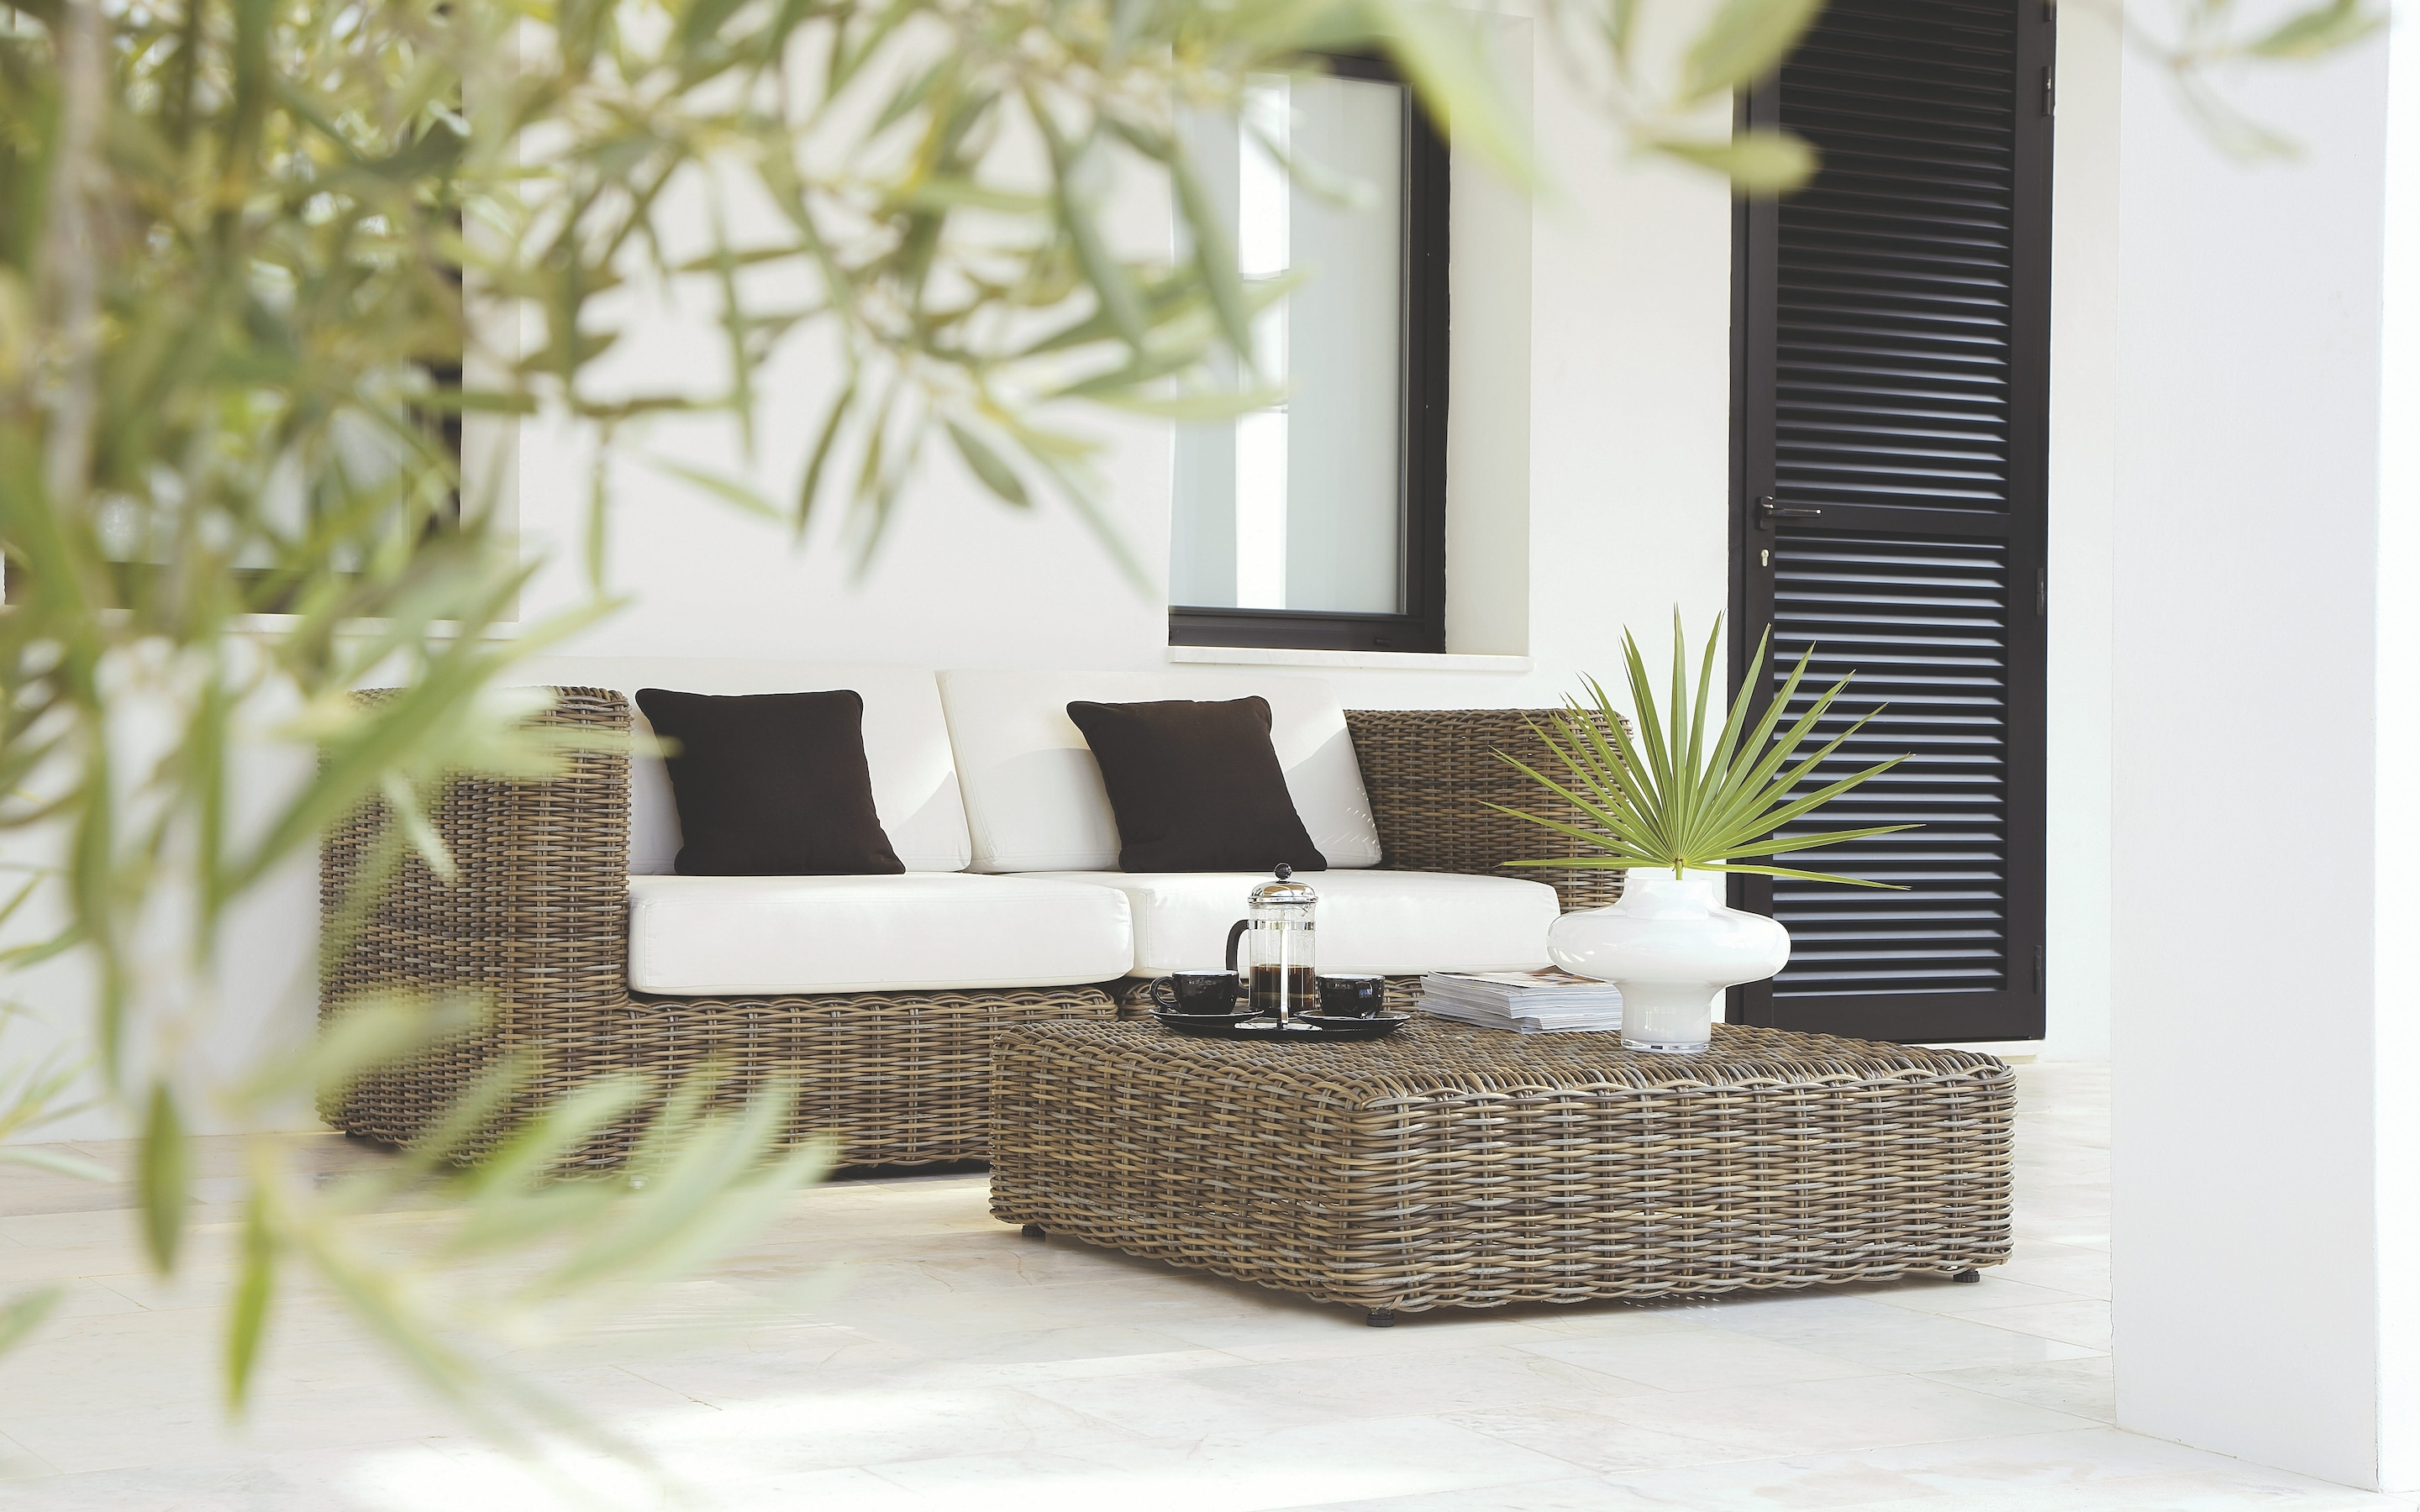 Getting your garden furniture right with rattan   The Telegraph Havana modular seating collection by Gloster  frontgate com